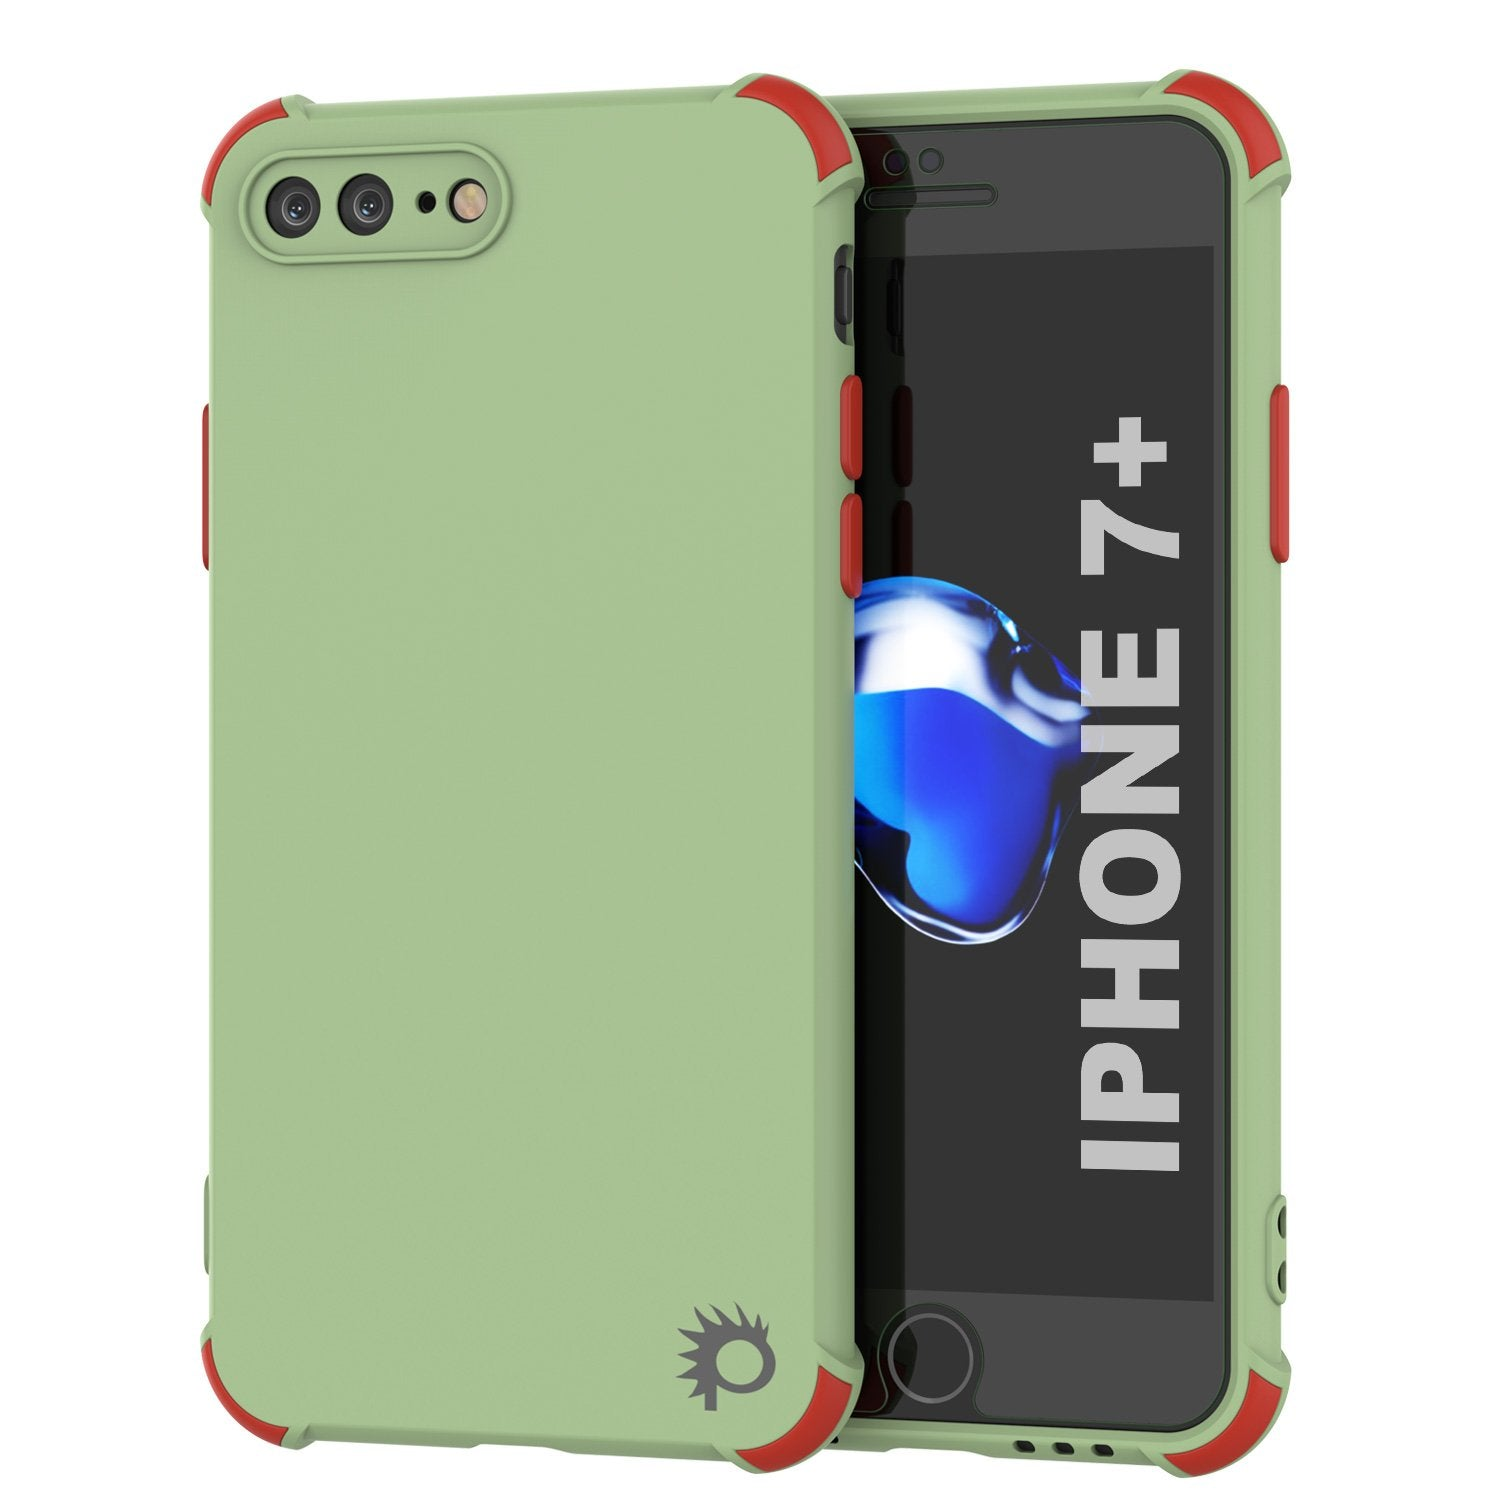 Punkcase Protective & Lightweight TPU Case [Sunshine Series] for iPhone 7+ Plus [Light Green]